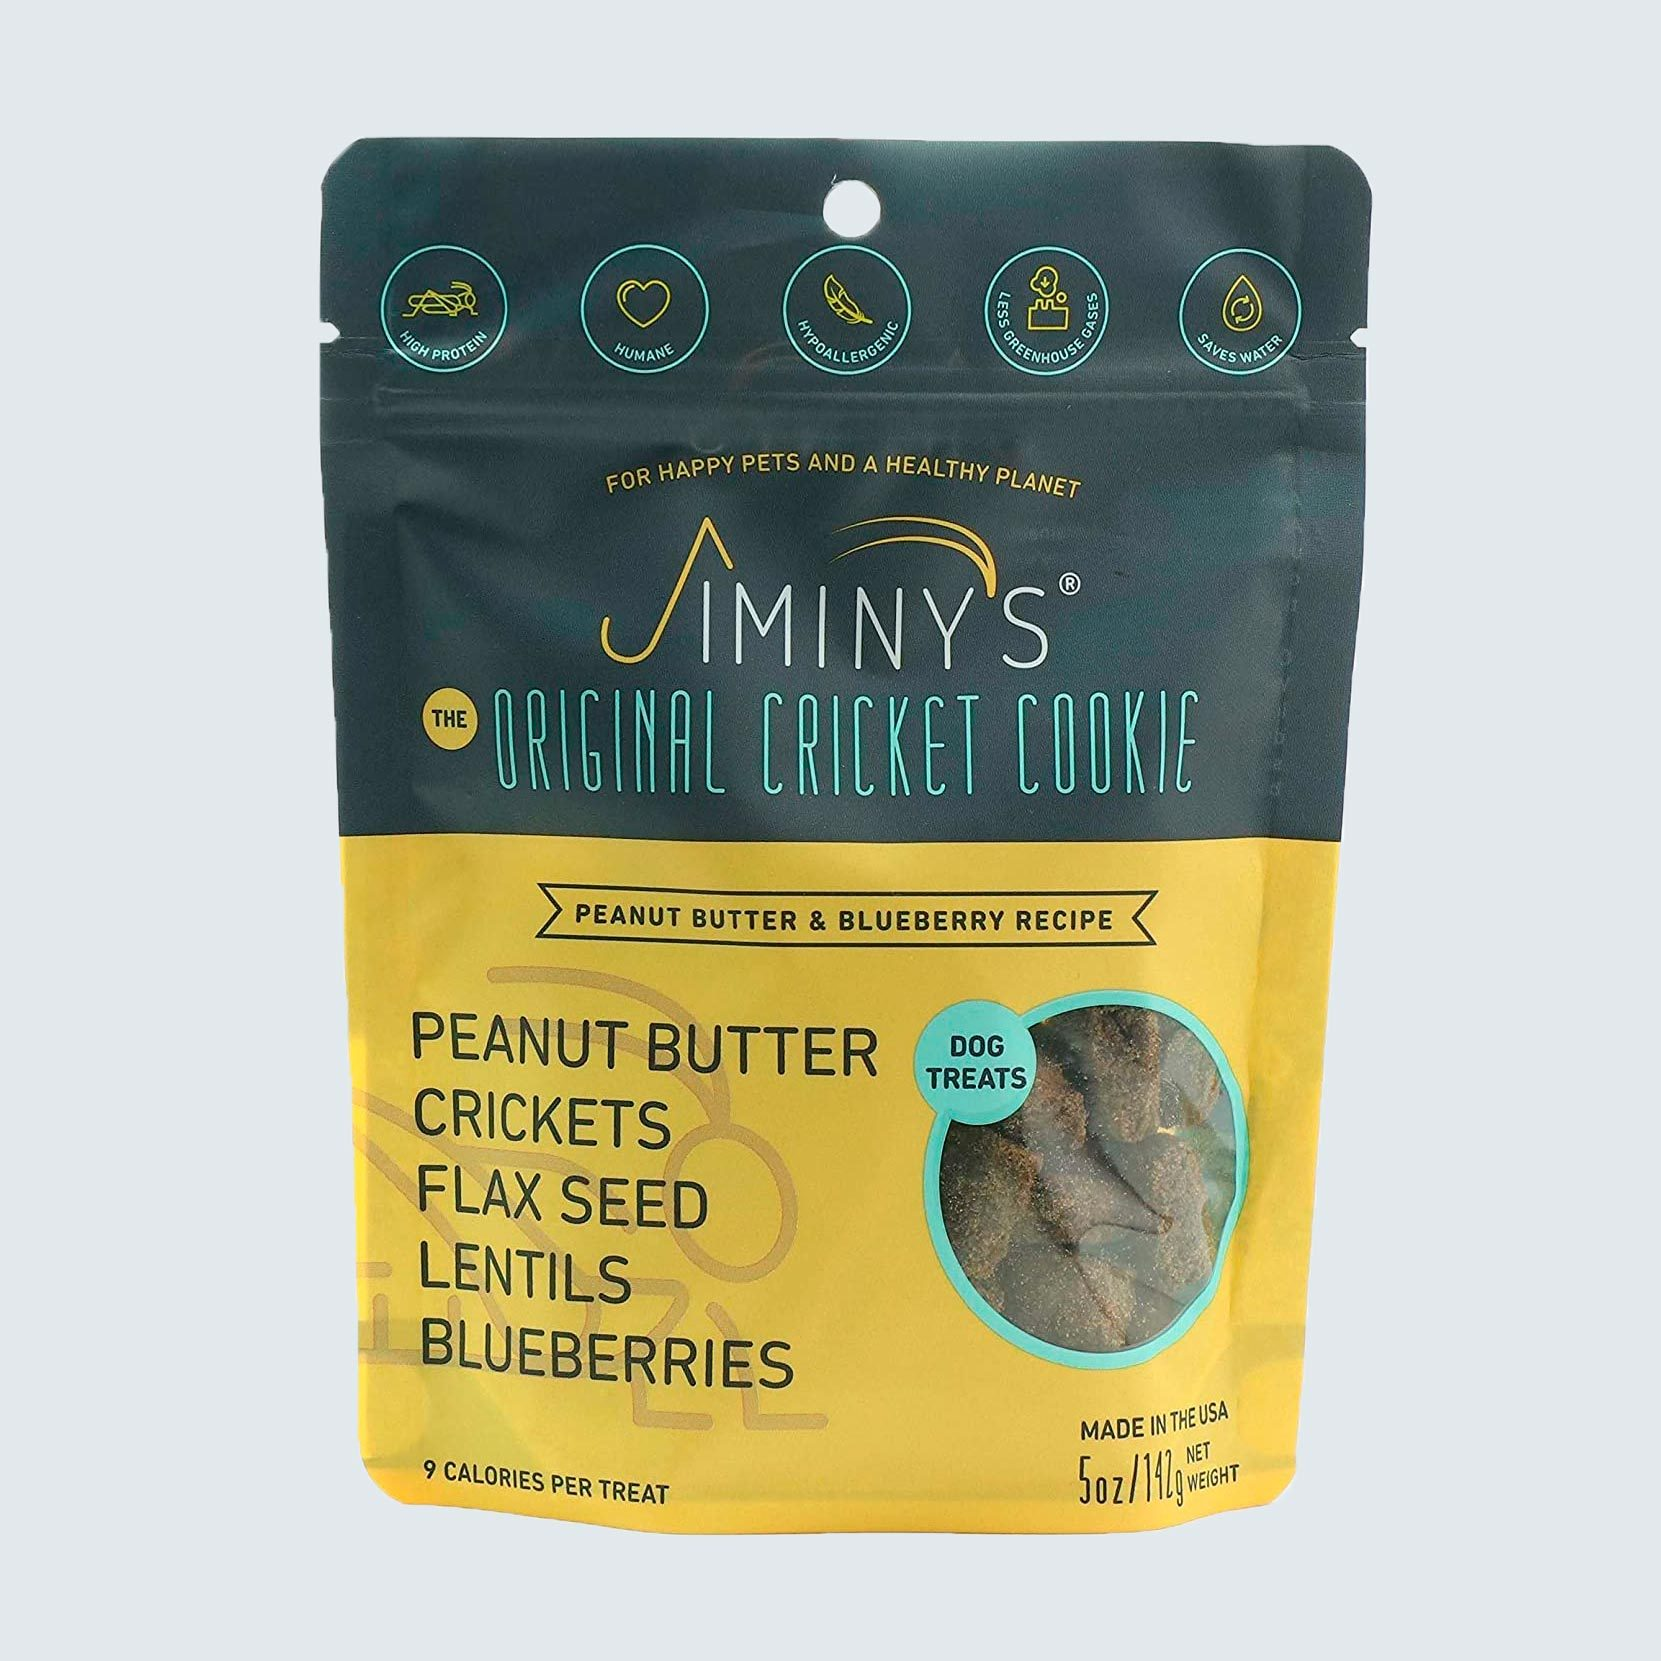 Jiminy's Cricket Protein Dog Cookies